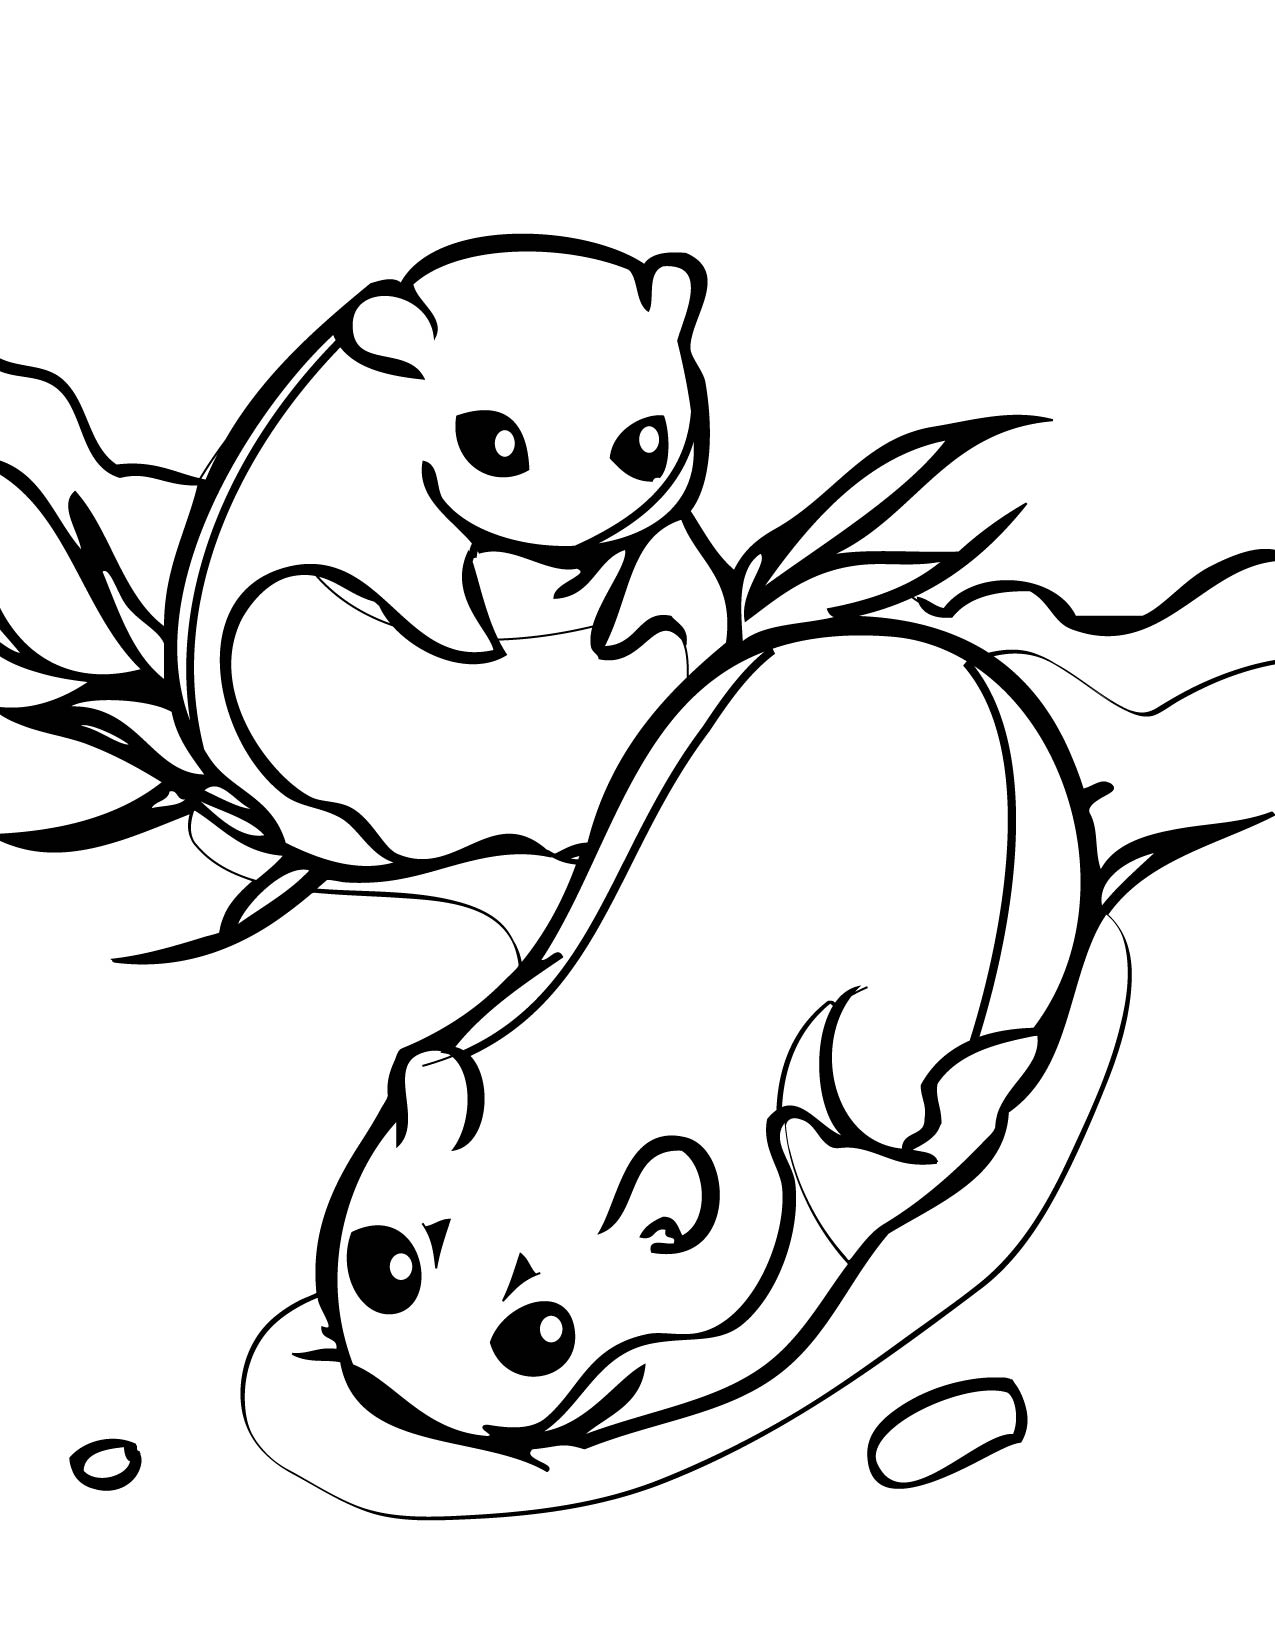 Lemming Coloring Page